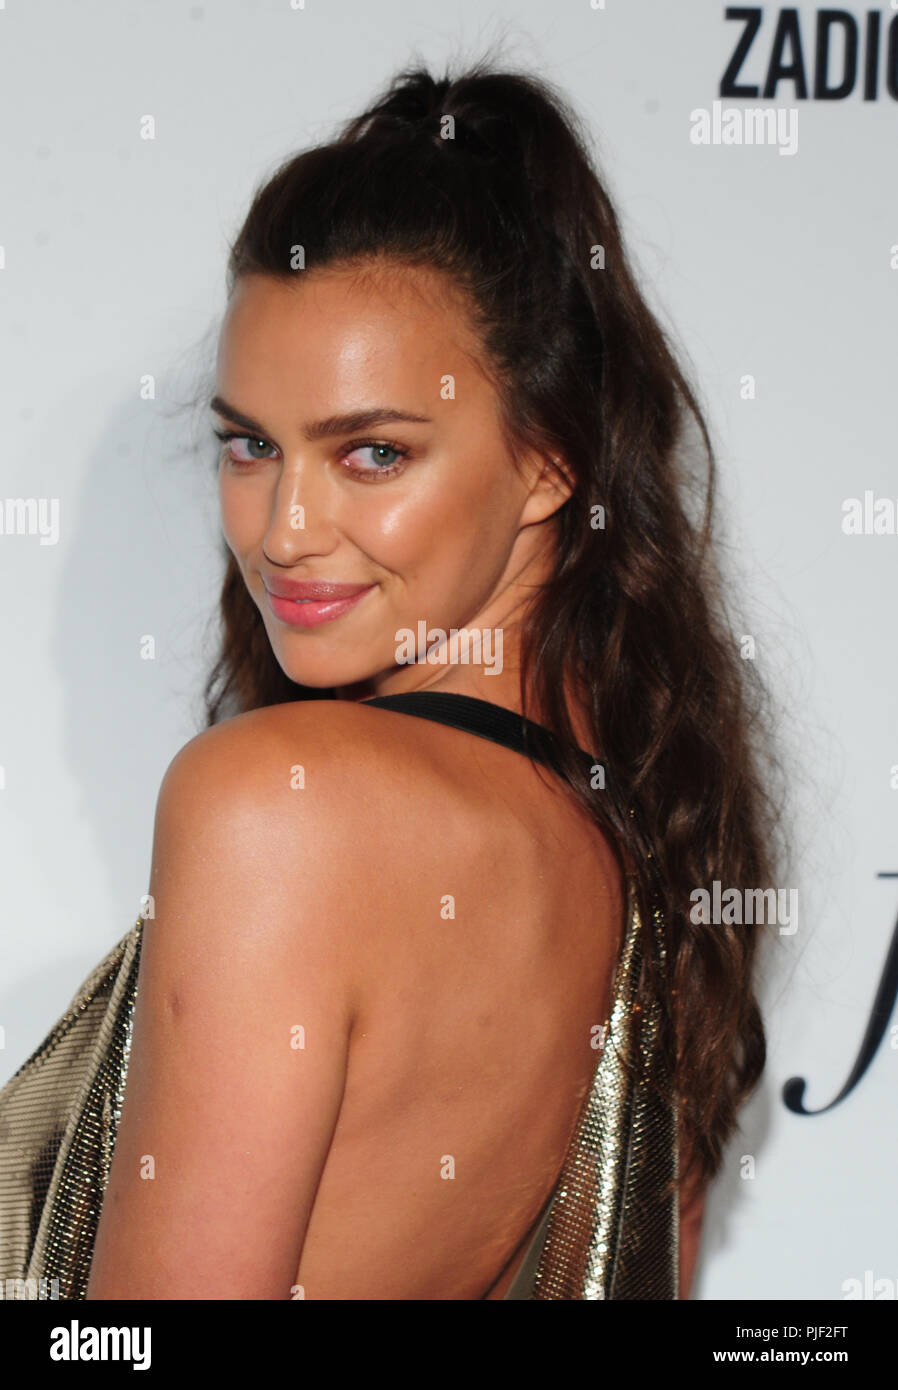 Images Irina Shayk nude (25 foto and video), Sexy, Paparazzi, Selfie, lingerie 2020